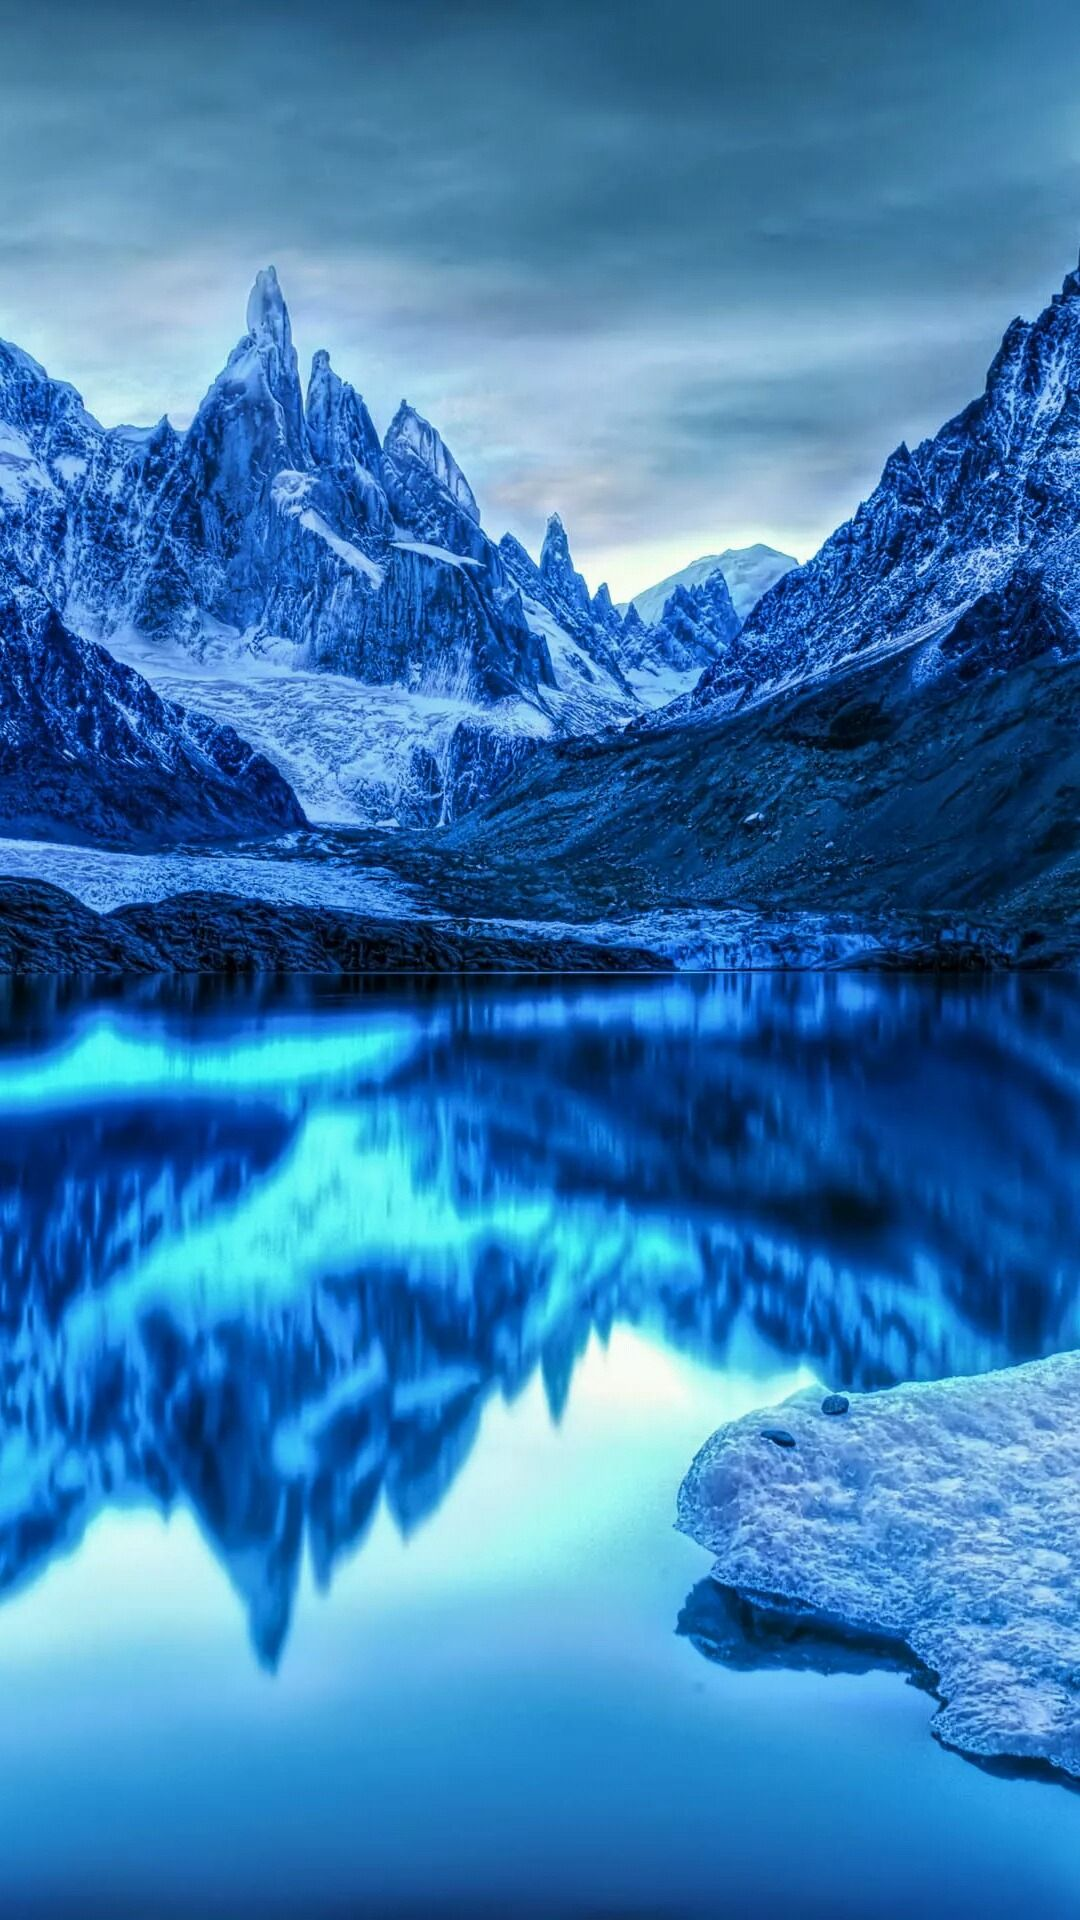 Free Download Download Ice Lake Samsung Galaxy J5 Hd Wallpapers Winter Cold 1080x1920 For Your Desktop Mobile Tablet Explore 10 Samsung J5 Wallpapers Samsung J5 Wallpapers Samsung Galaxy J5